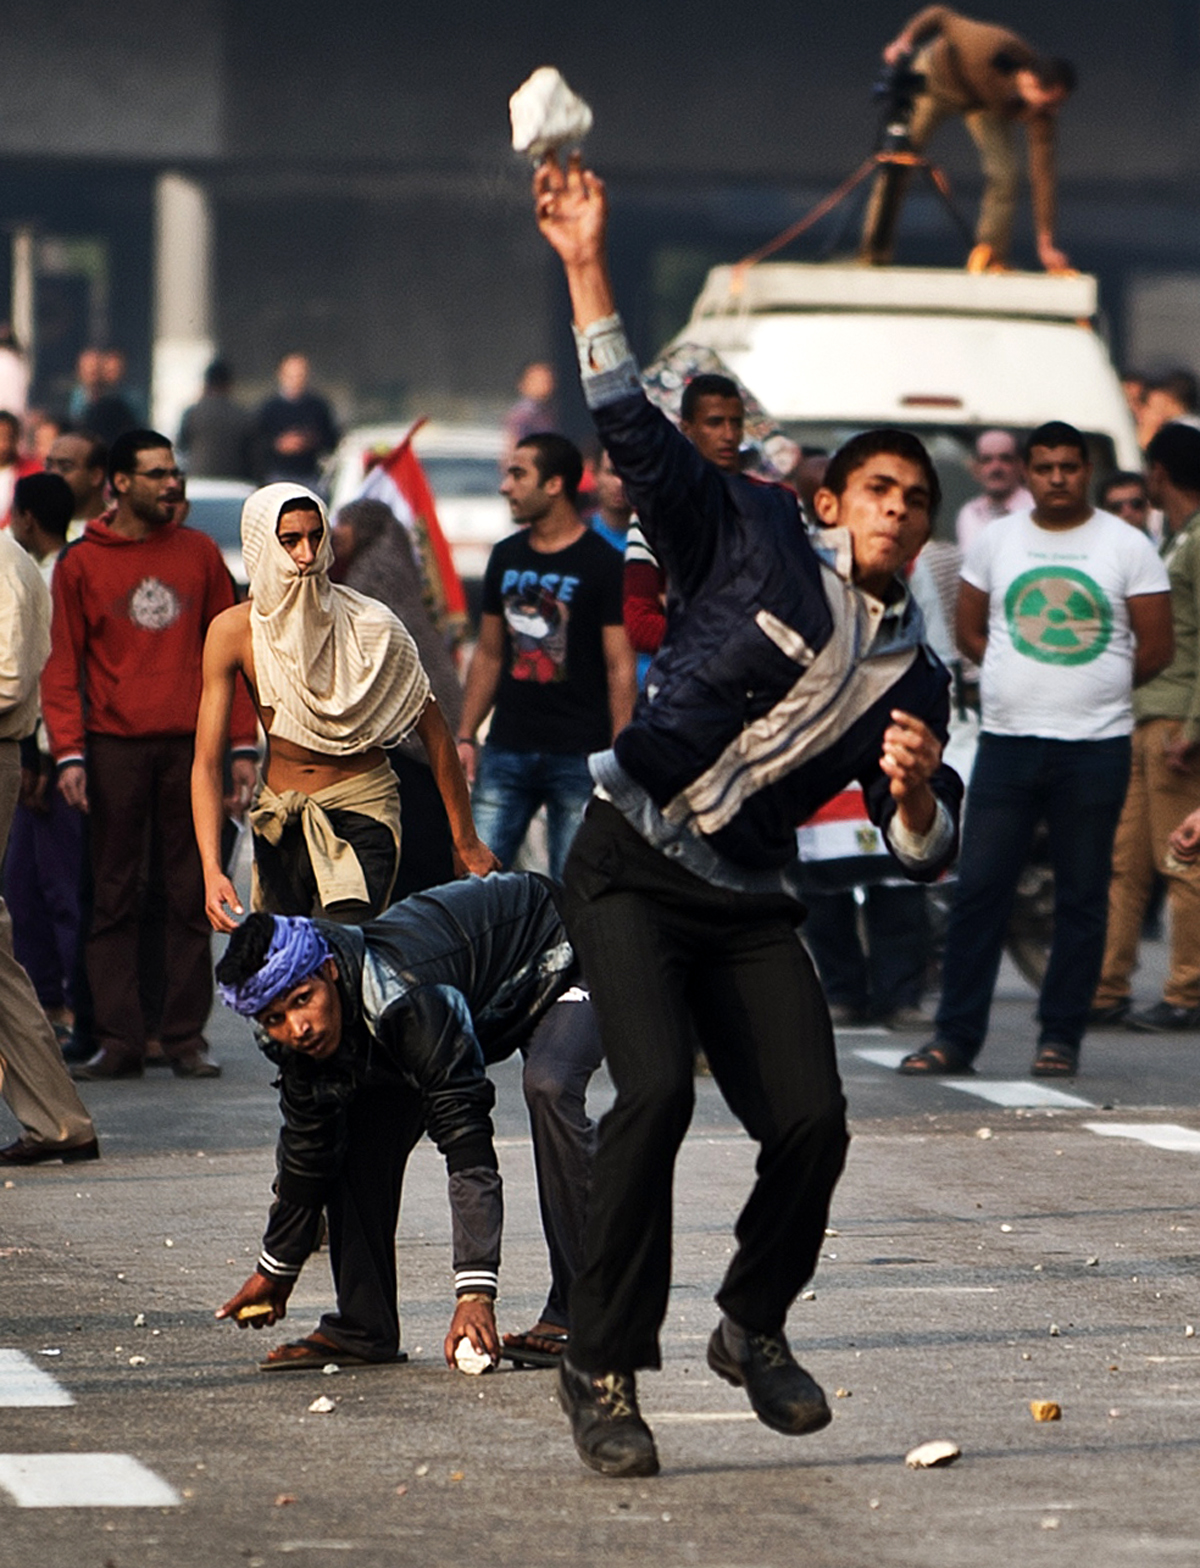 Egyptian supporters of the military regime throw stones towards anti-regime protesters (unseen) during clashes in Cairo's Tahrir Square on November 19, 2013 in Cairo, Egypt (AFP PHOTO/GIANLUIGI GUERCIA)